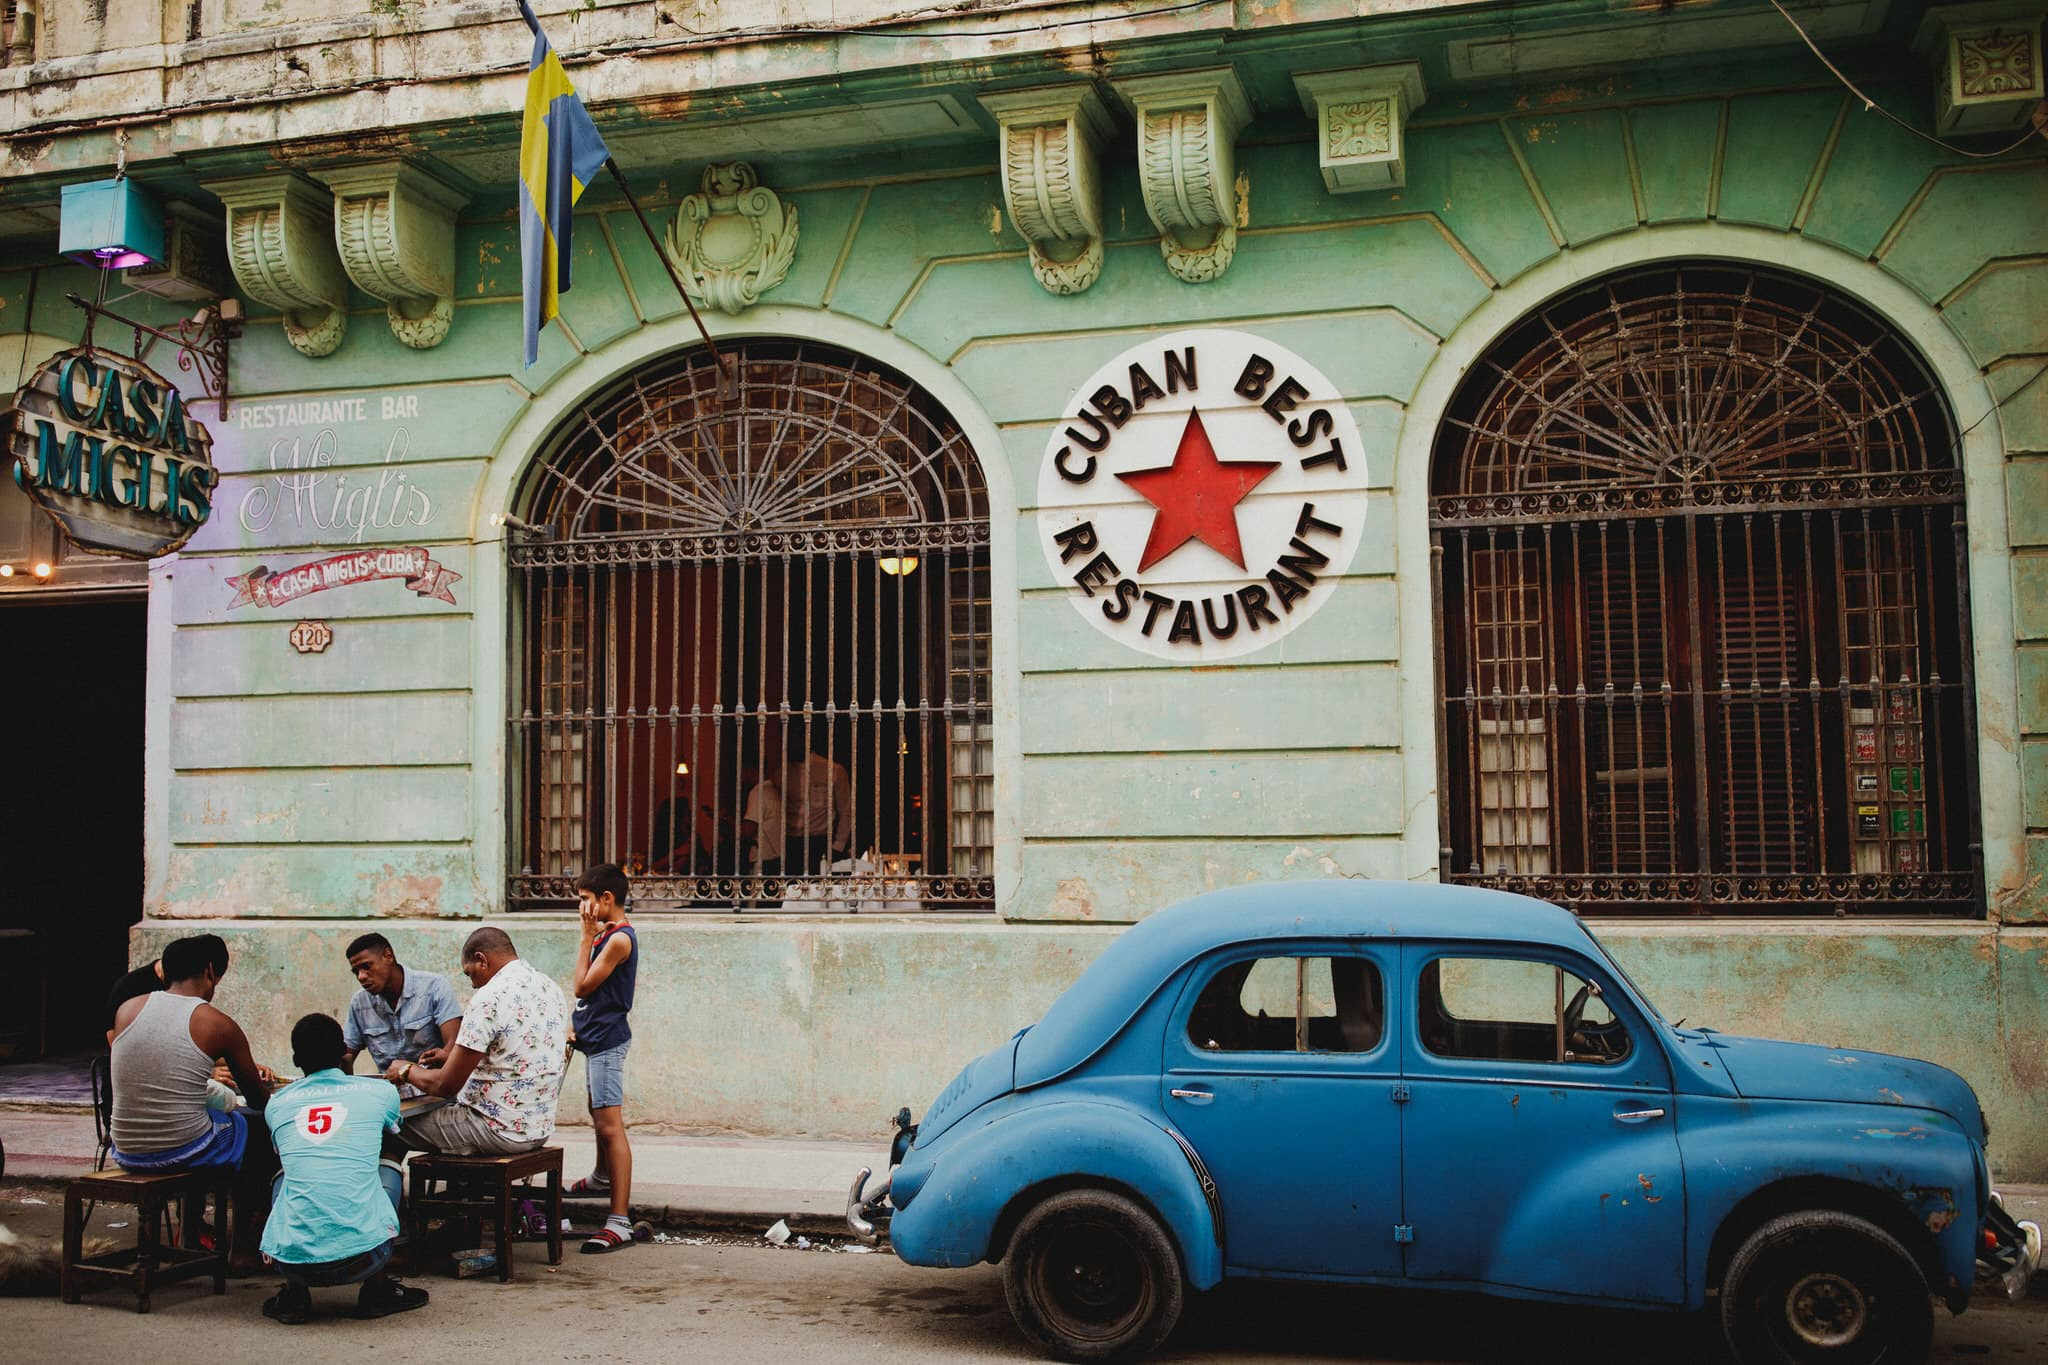 Classic cars and street photography in Centro Havana. Travel photographer Brent Calis.